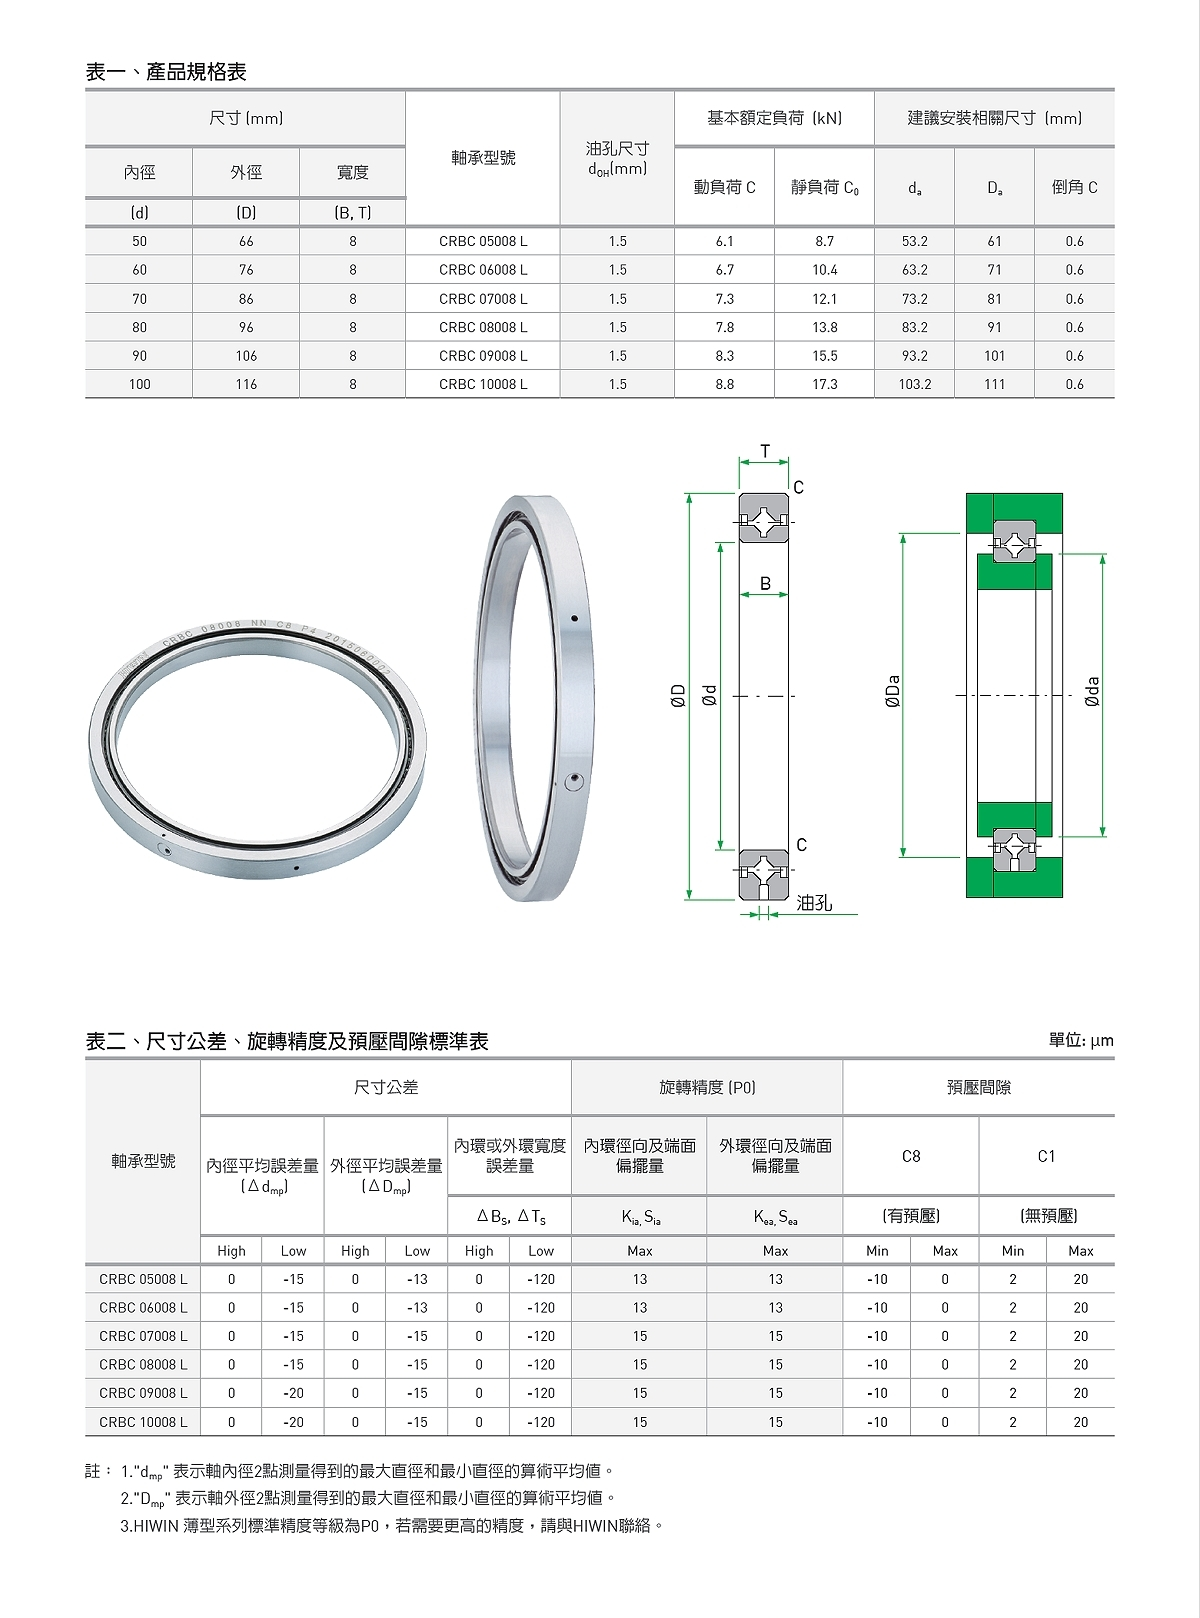 HIWIN Crossed Roller Bearing Thin Type Specification